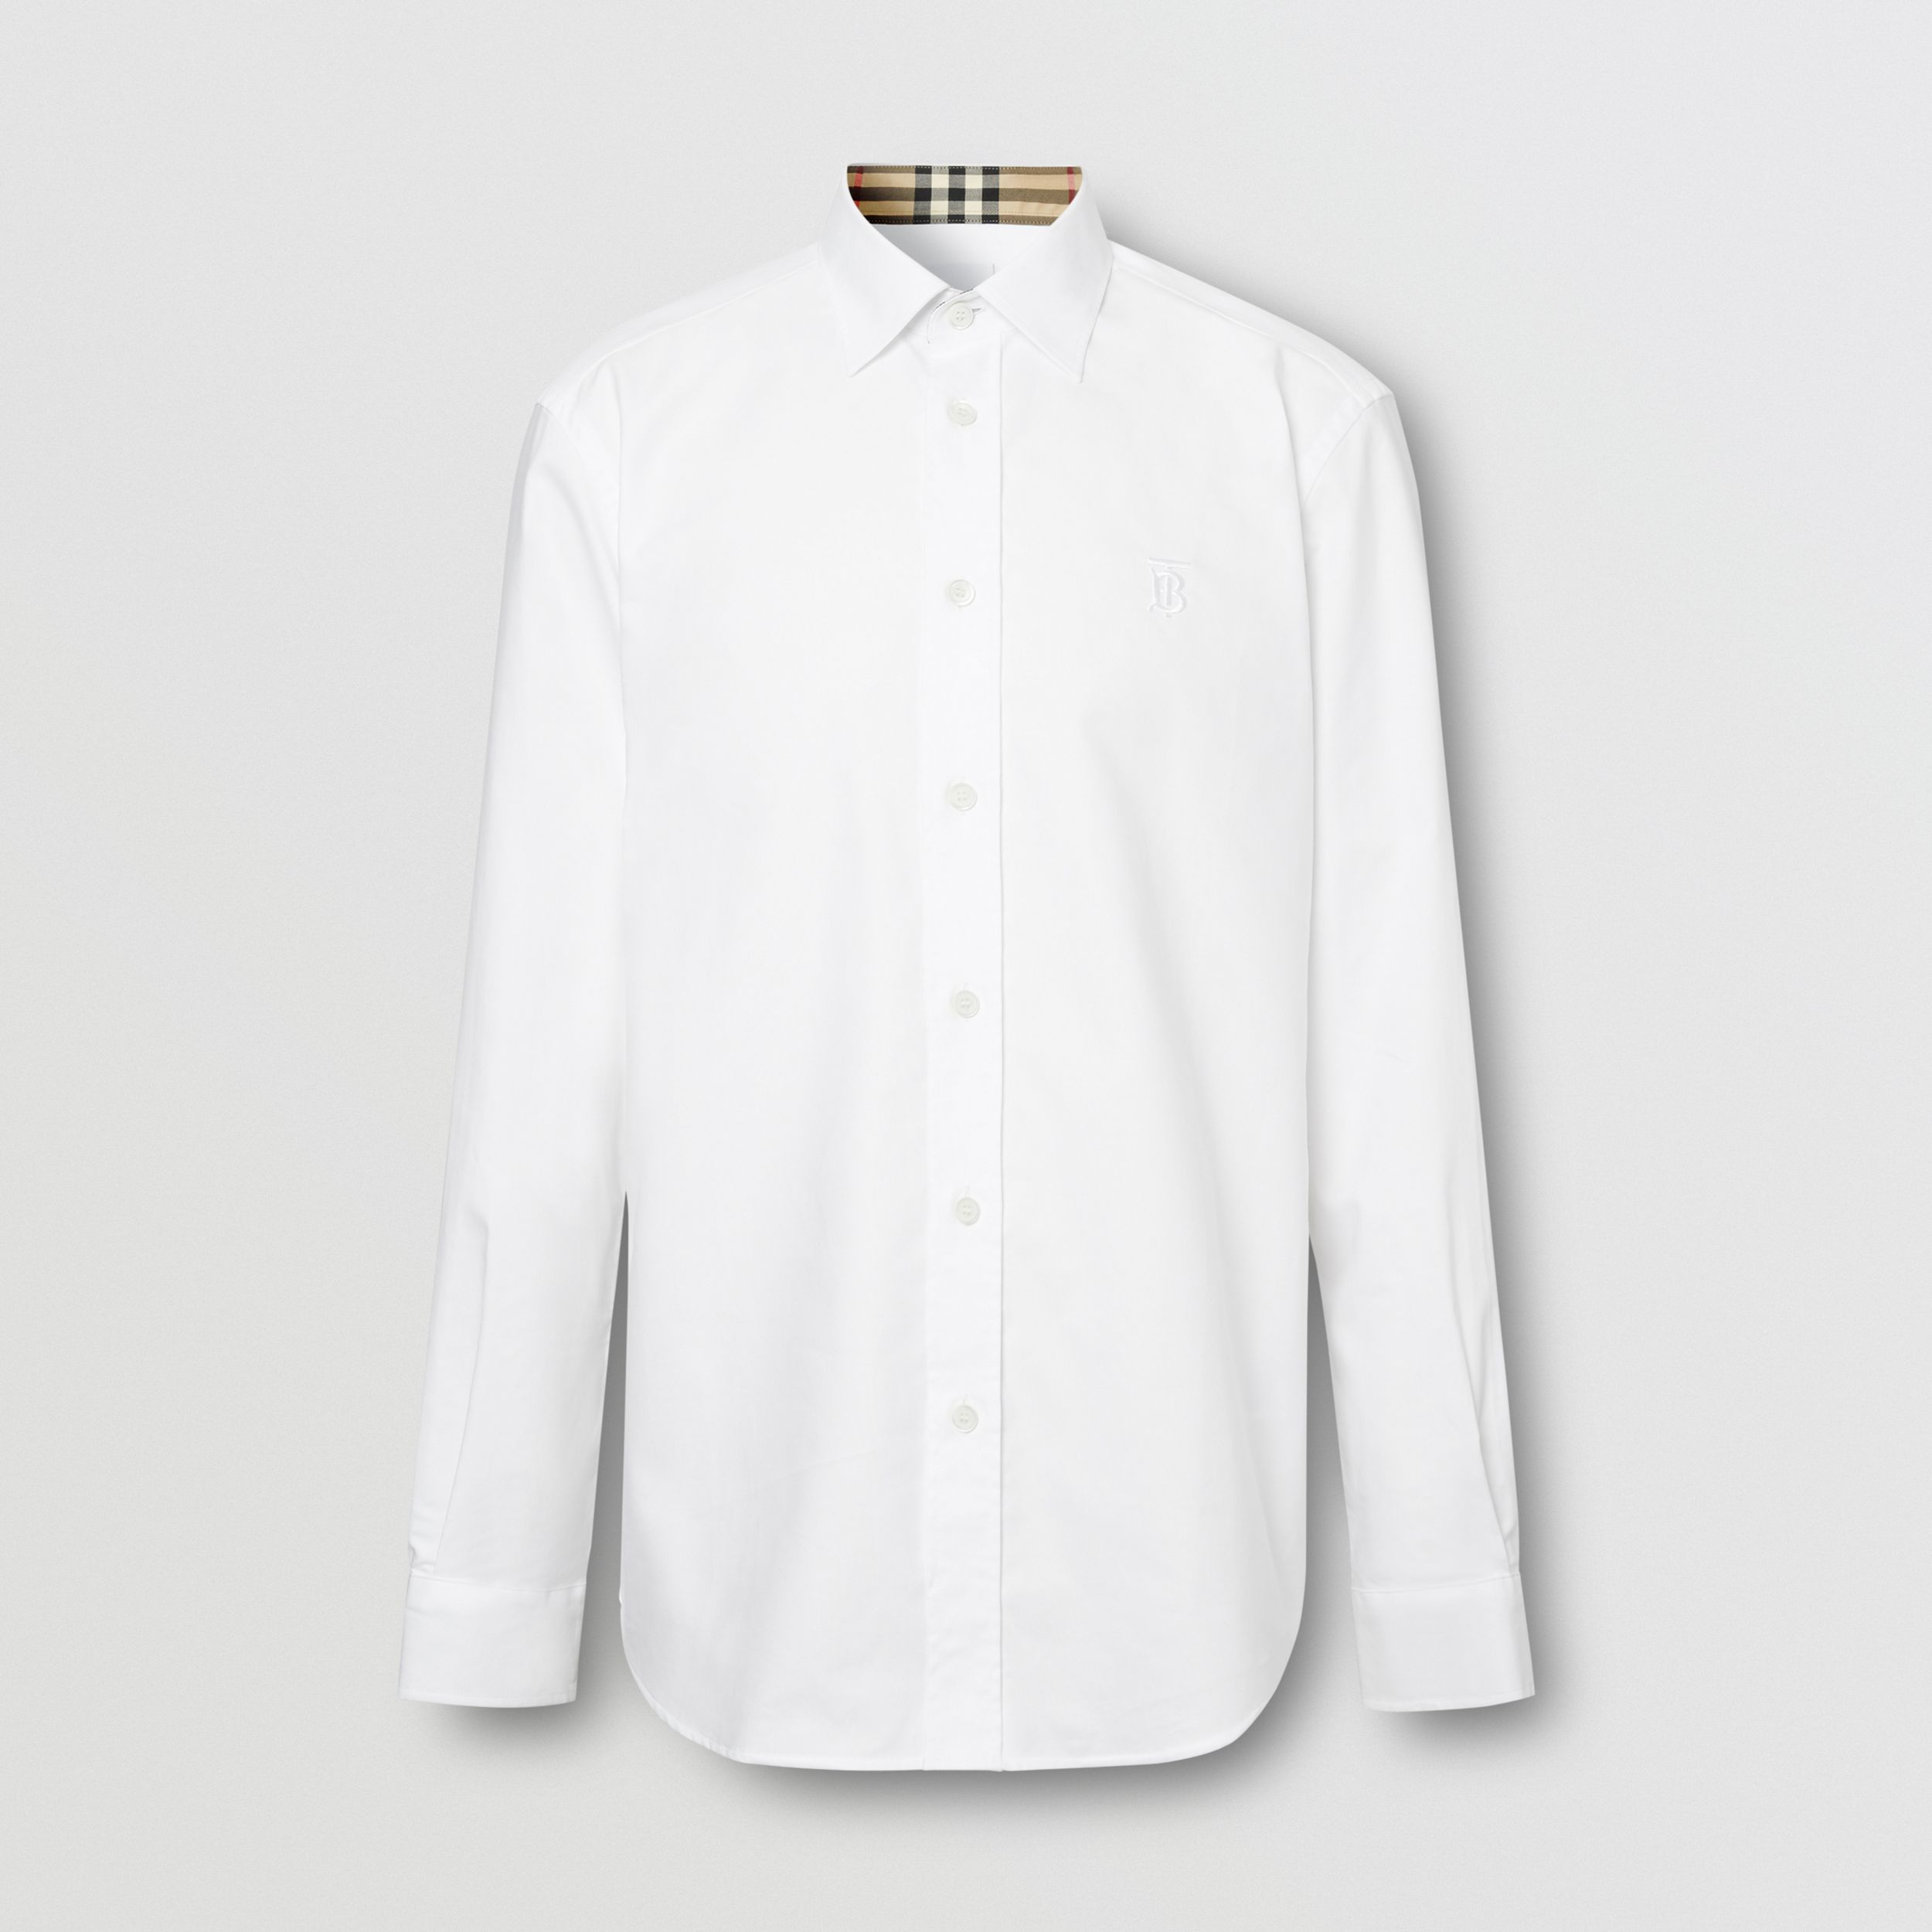 Monogram Motif Cotton Oxford Shirt in White - Men | Burberry - 4